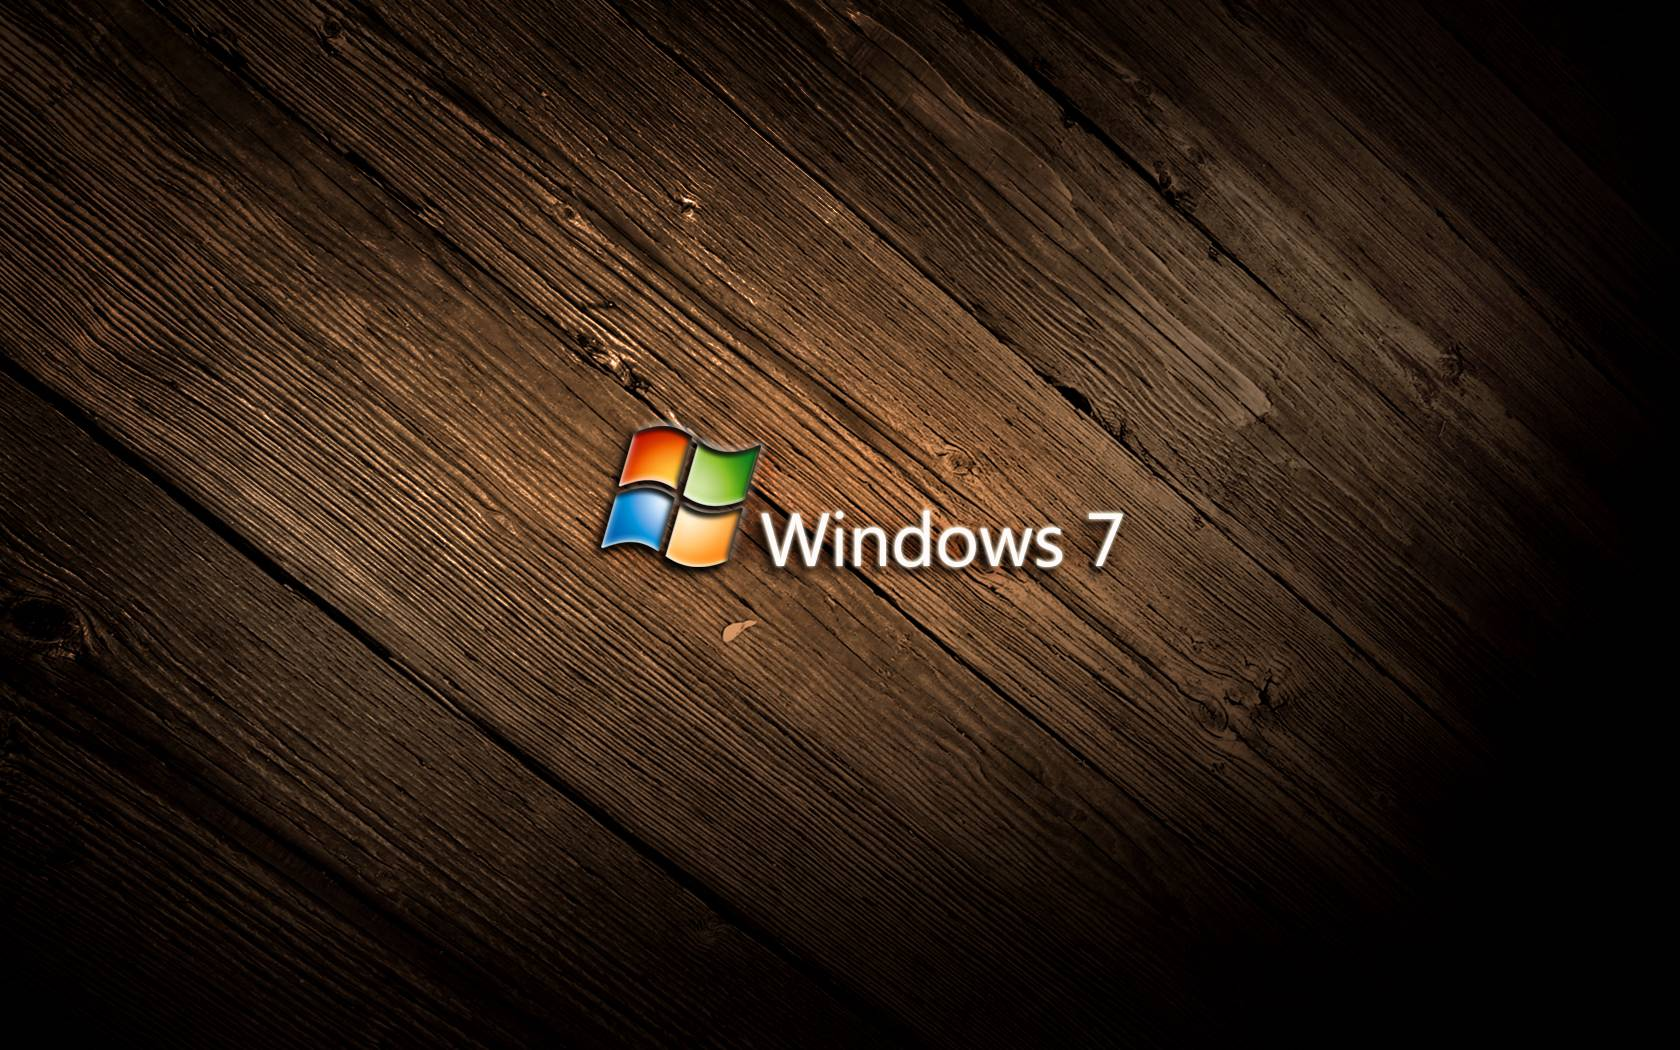 windows 7 hd wallpapers wallpaper cave